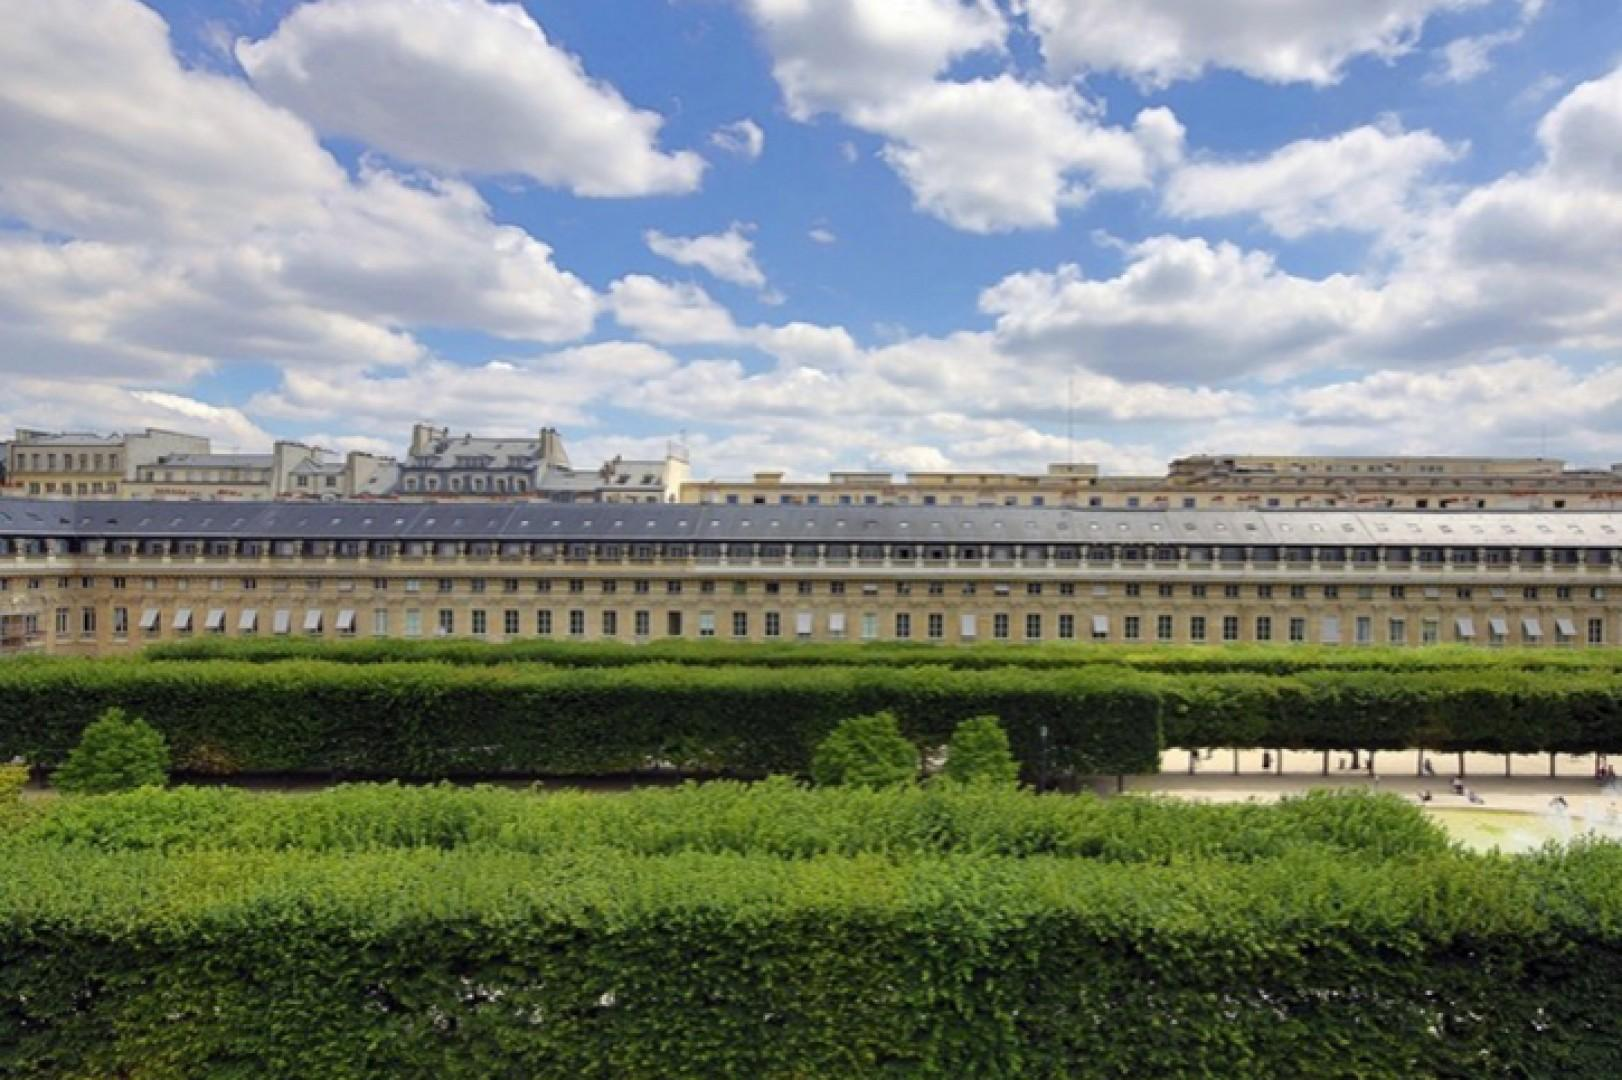 Stunning views of the Palais-Royal gardens from the balcony.